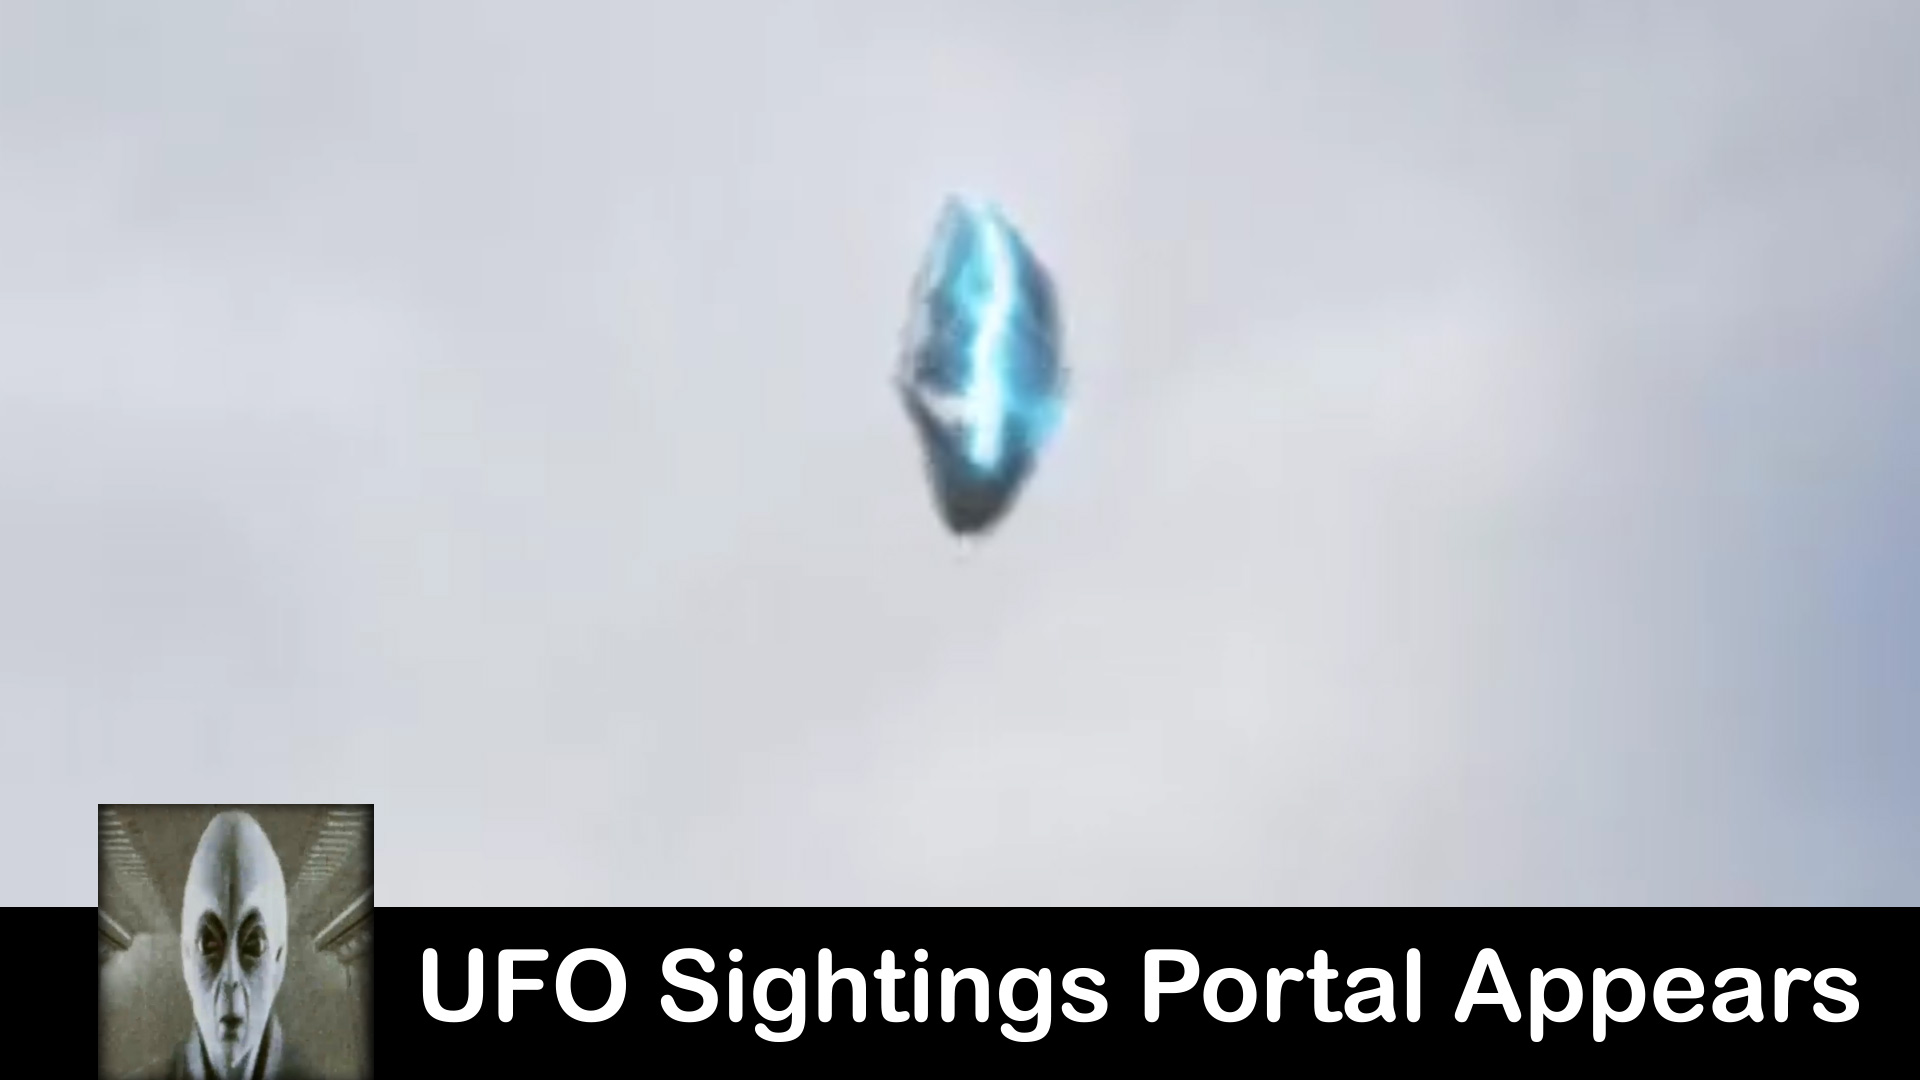 UFO Sightings Portal Appears Again July 2017